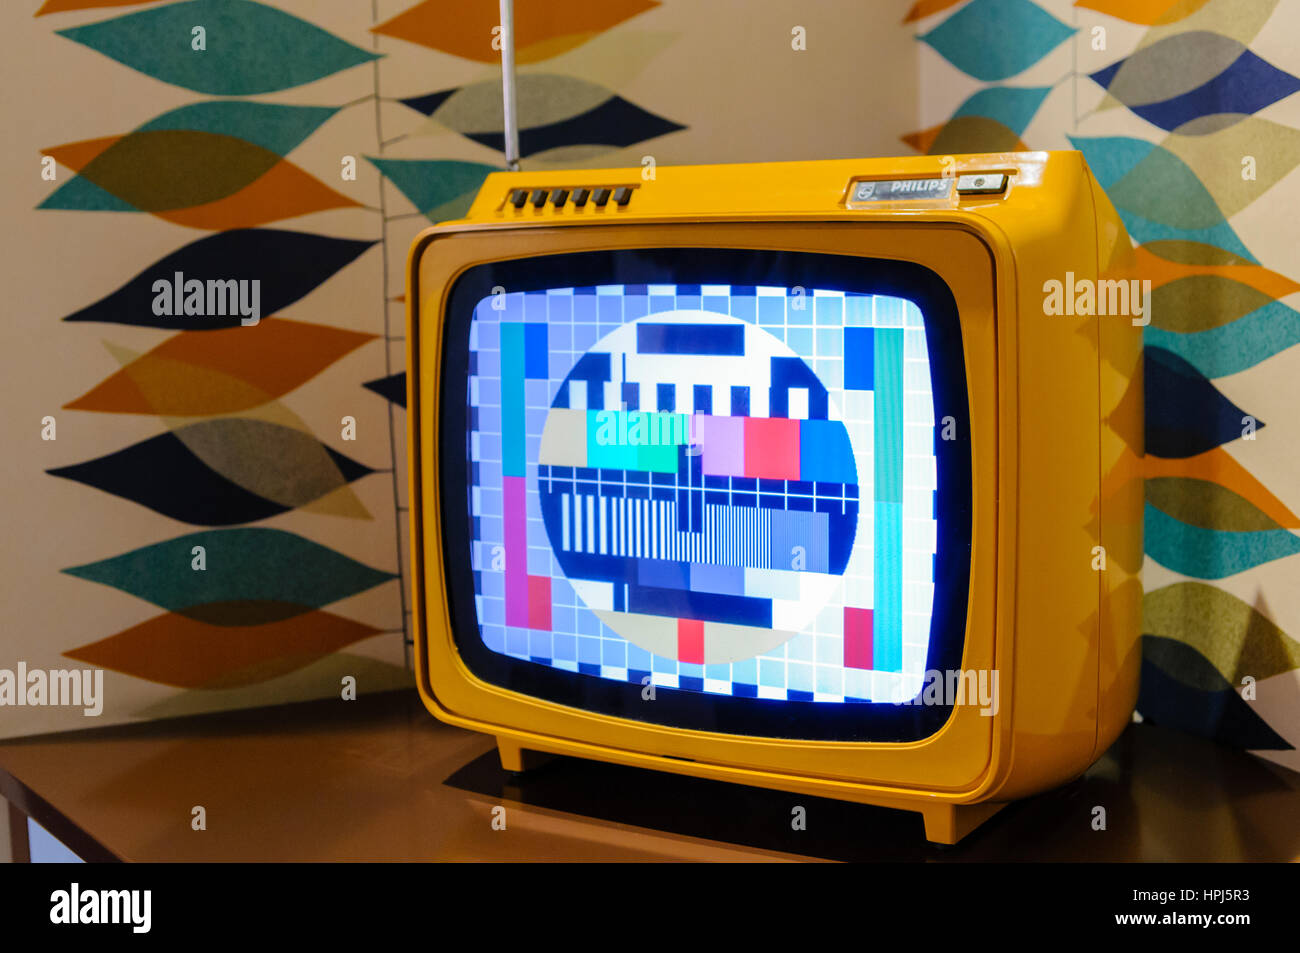 Old Philips colour CRT television from the 1960s. - Stock Image